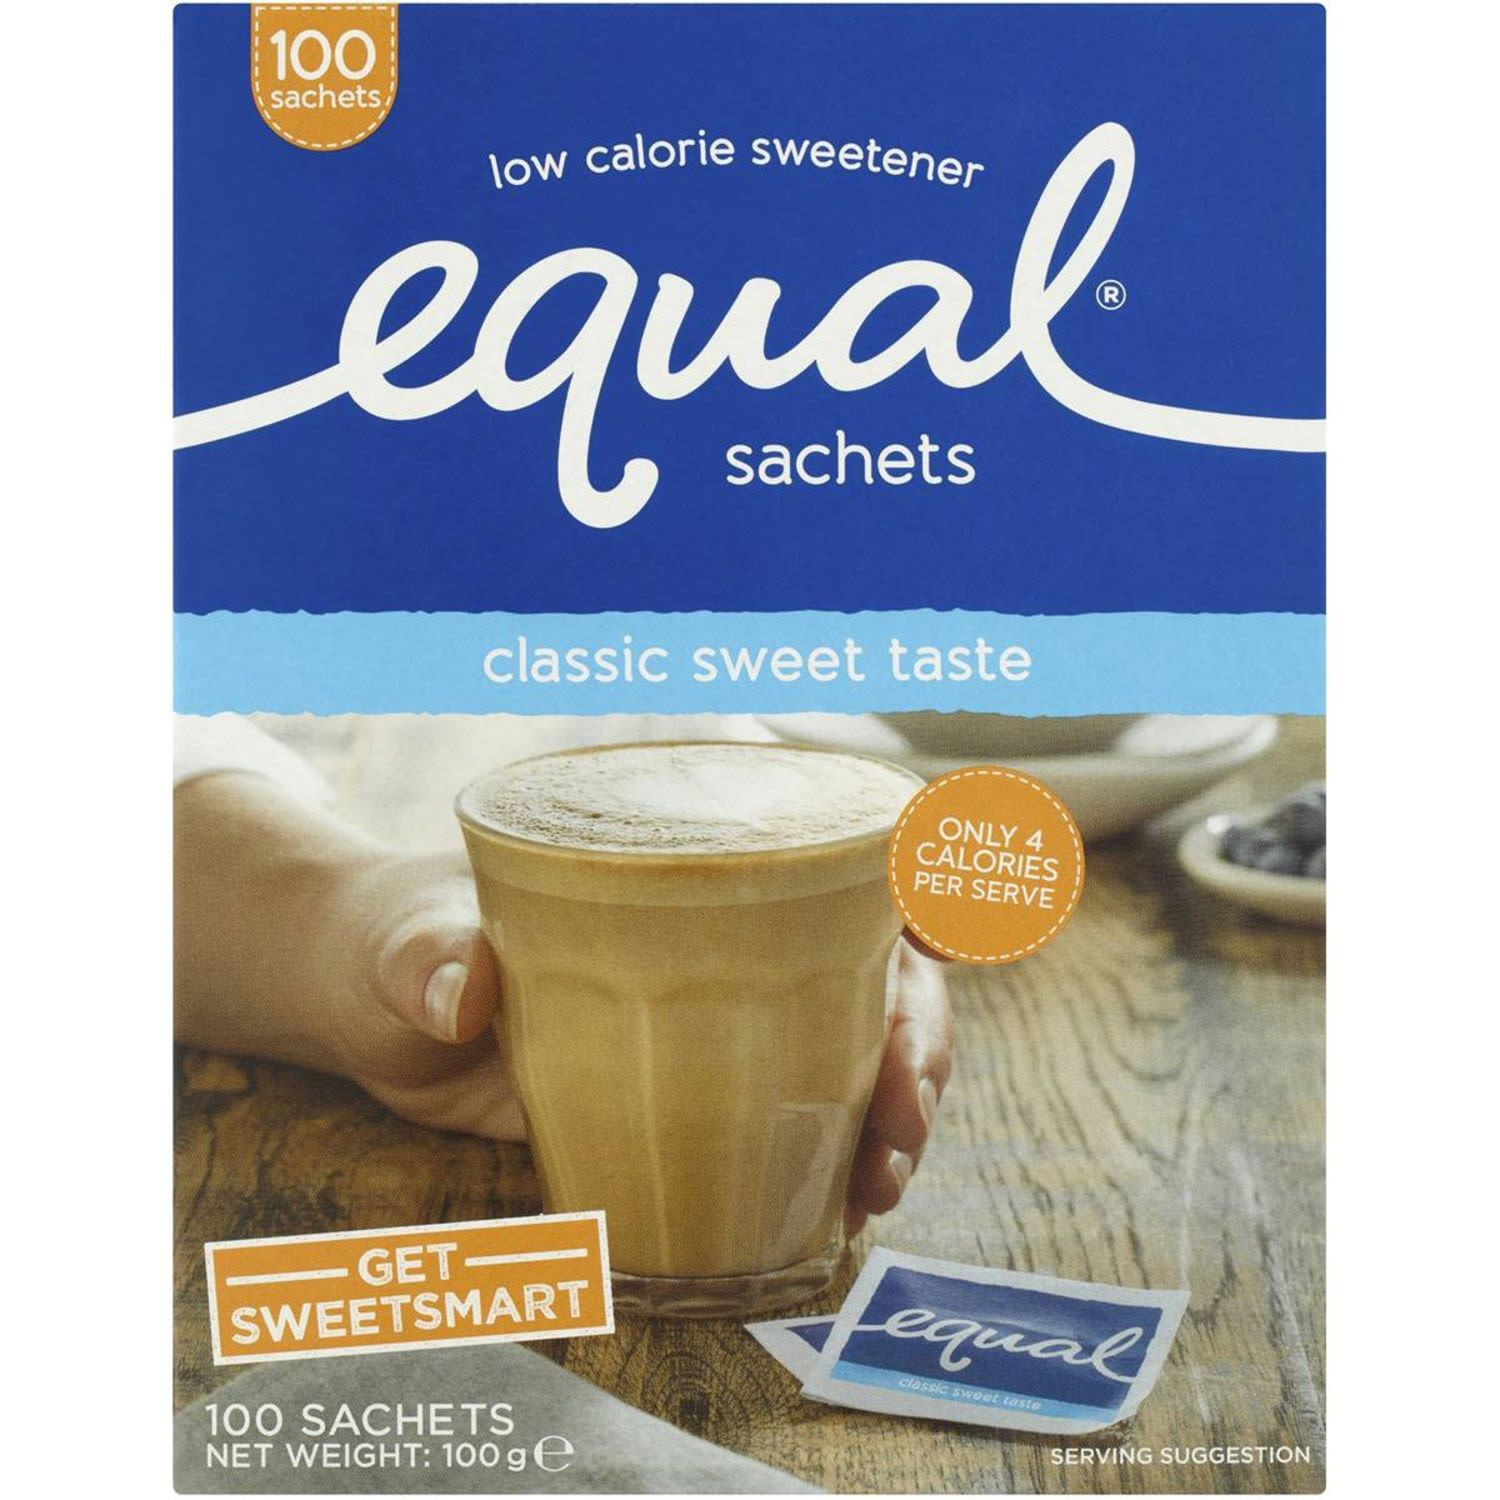 Equal Low Calorie Sweetener Sachets, 100 Each